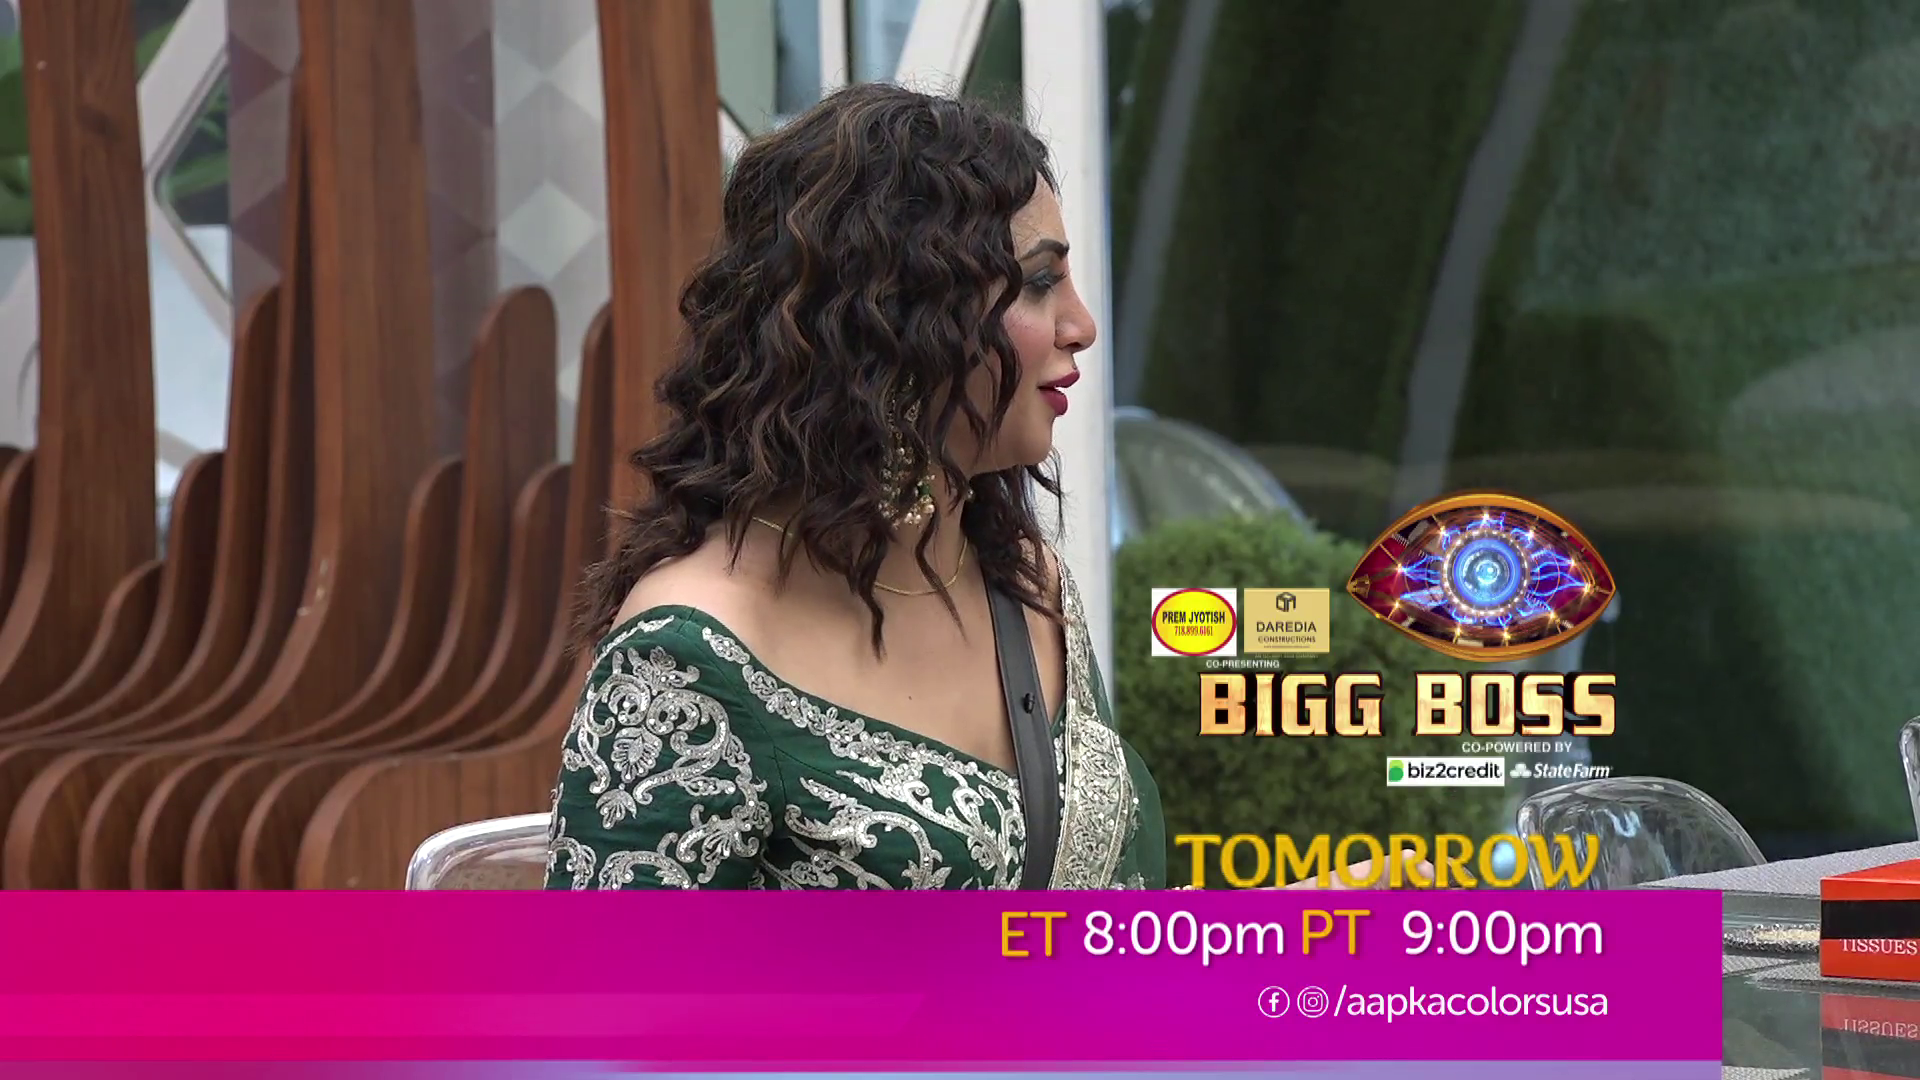 Watch Bigg Boss Everyday ET 8:00pm PT 9:00pm on Aapka Colors.